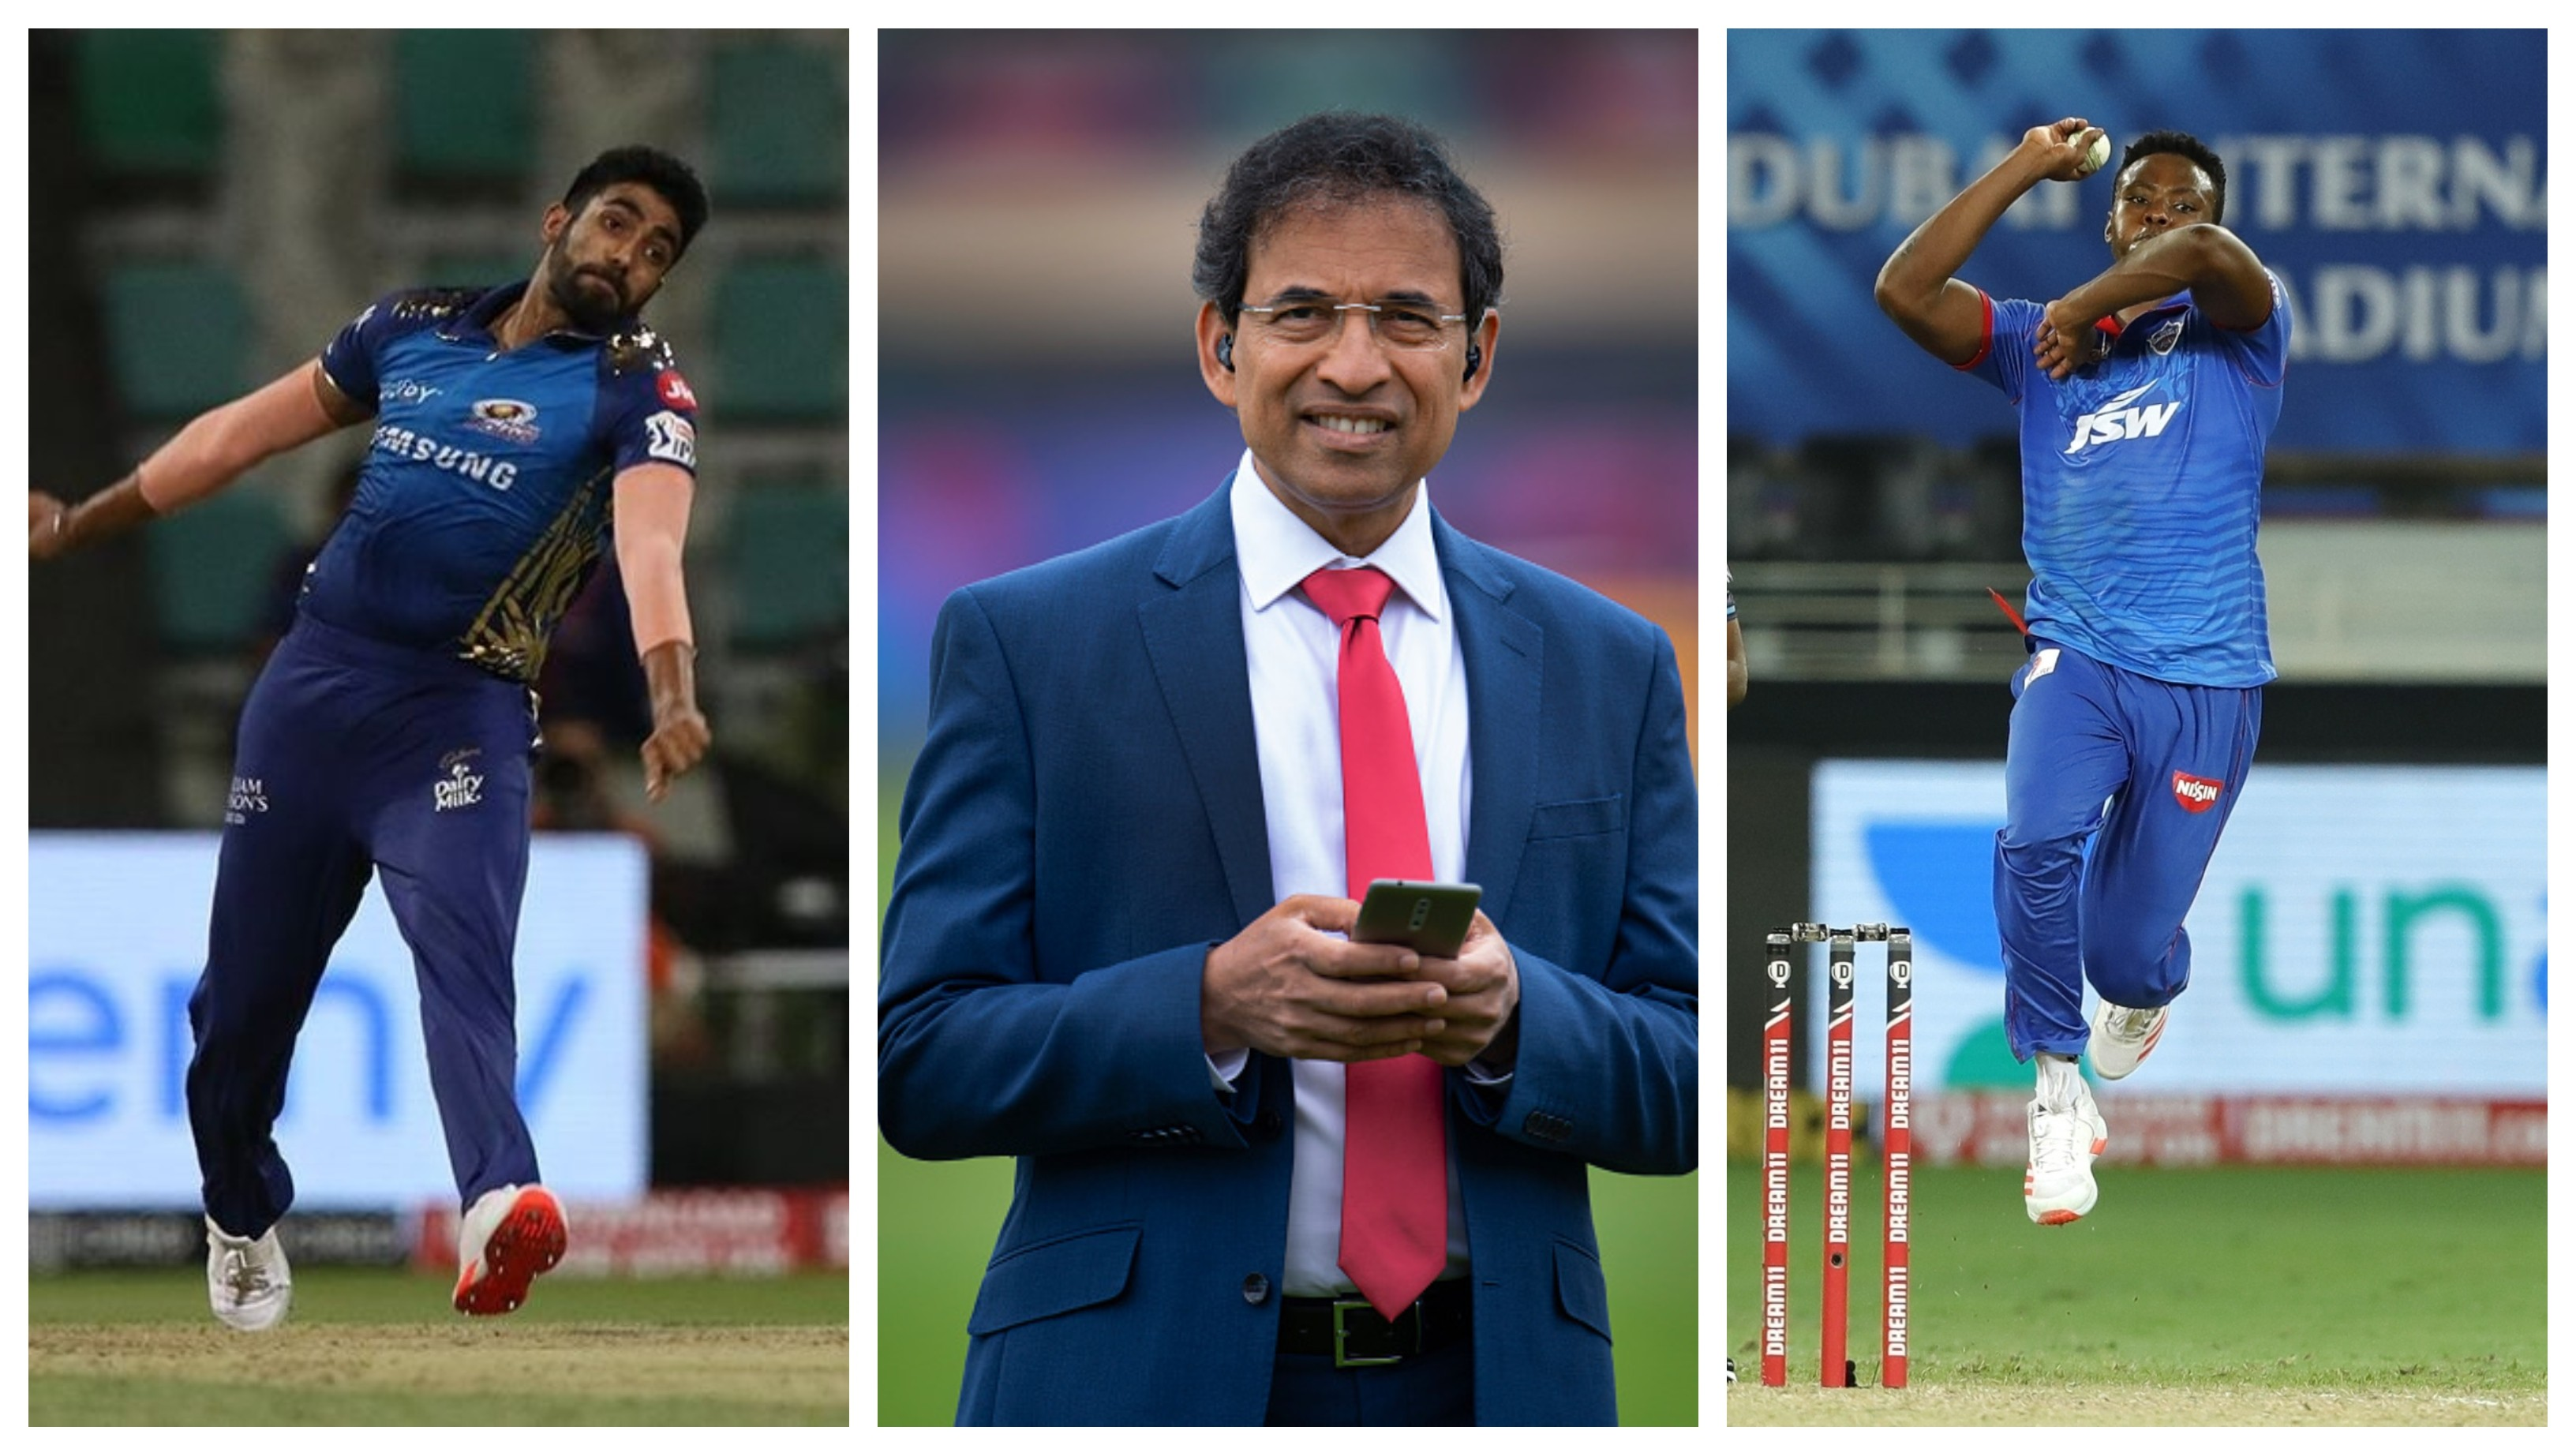 IPL 2020: Harsha Bhogle expresses delight over quality of fast bowling in IPL so far